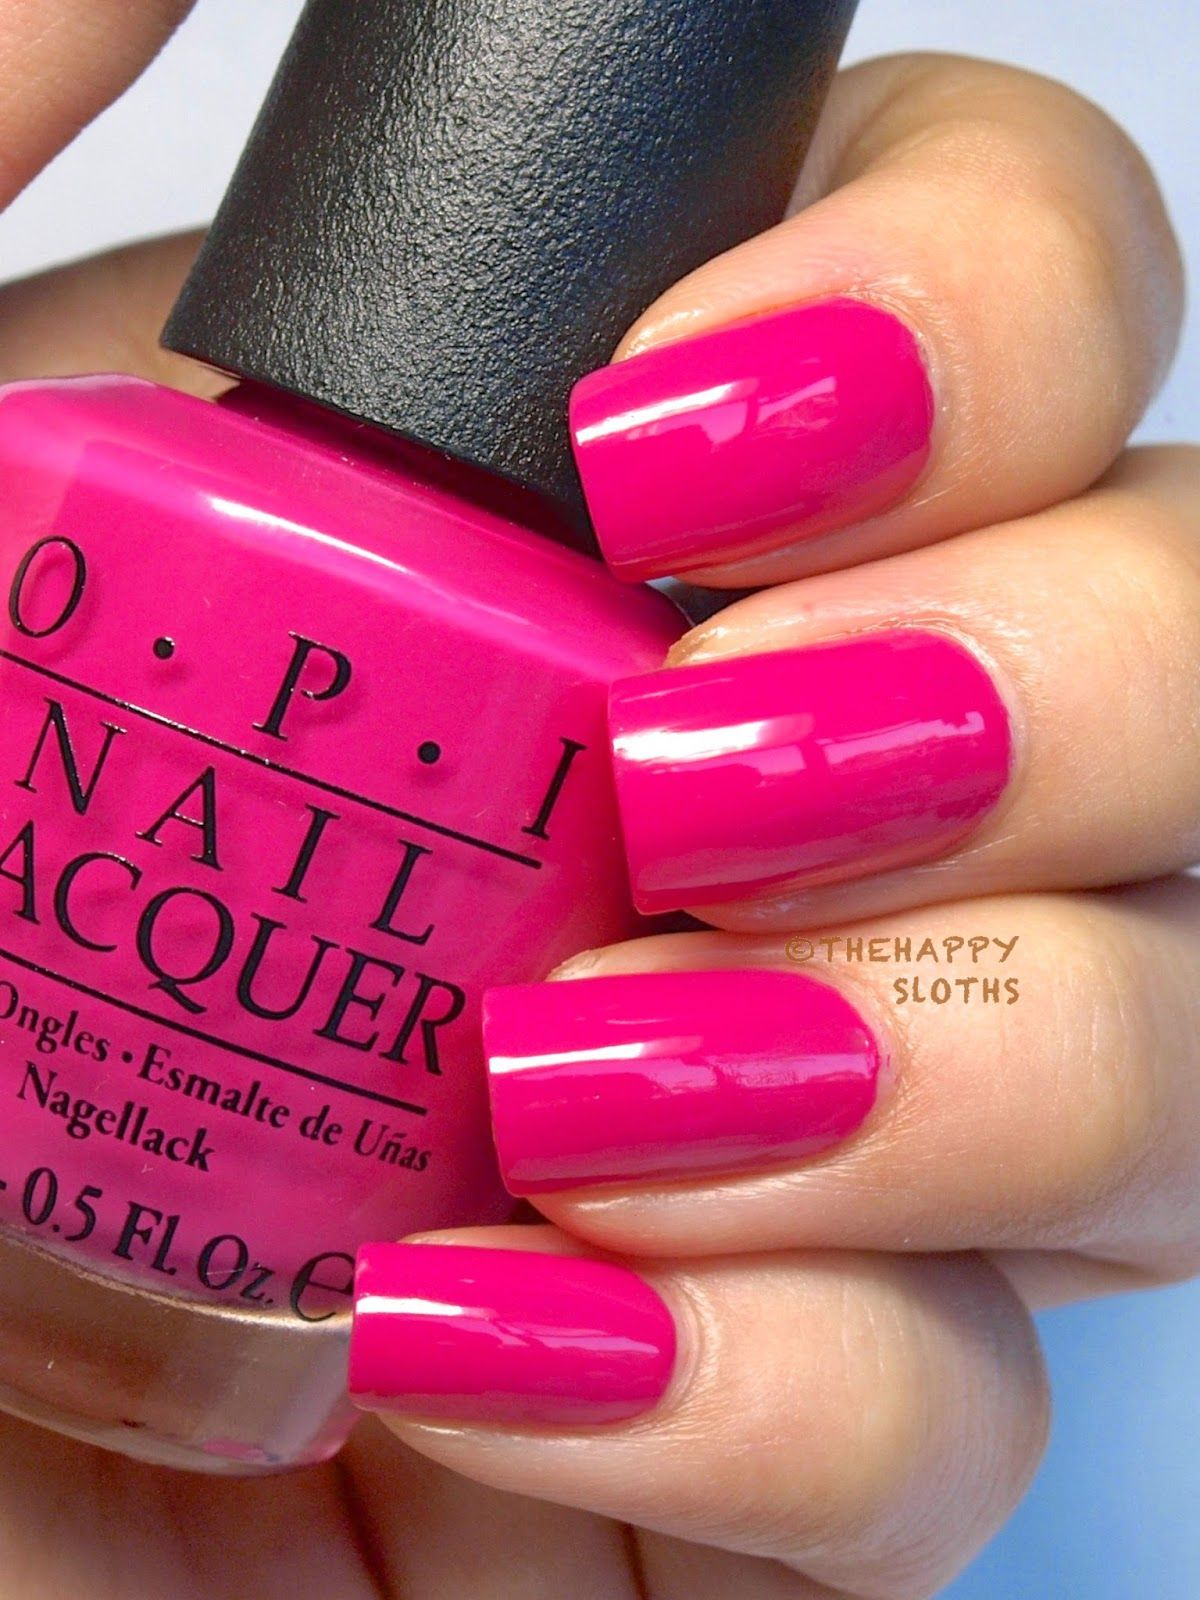 Ford Mustang By Opi Nail Polish Collection In Race Red The Sky S My Limit Love Ponies Review And Swatches